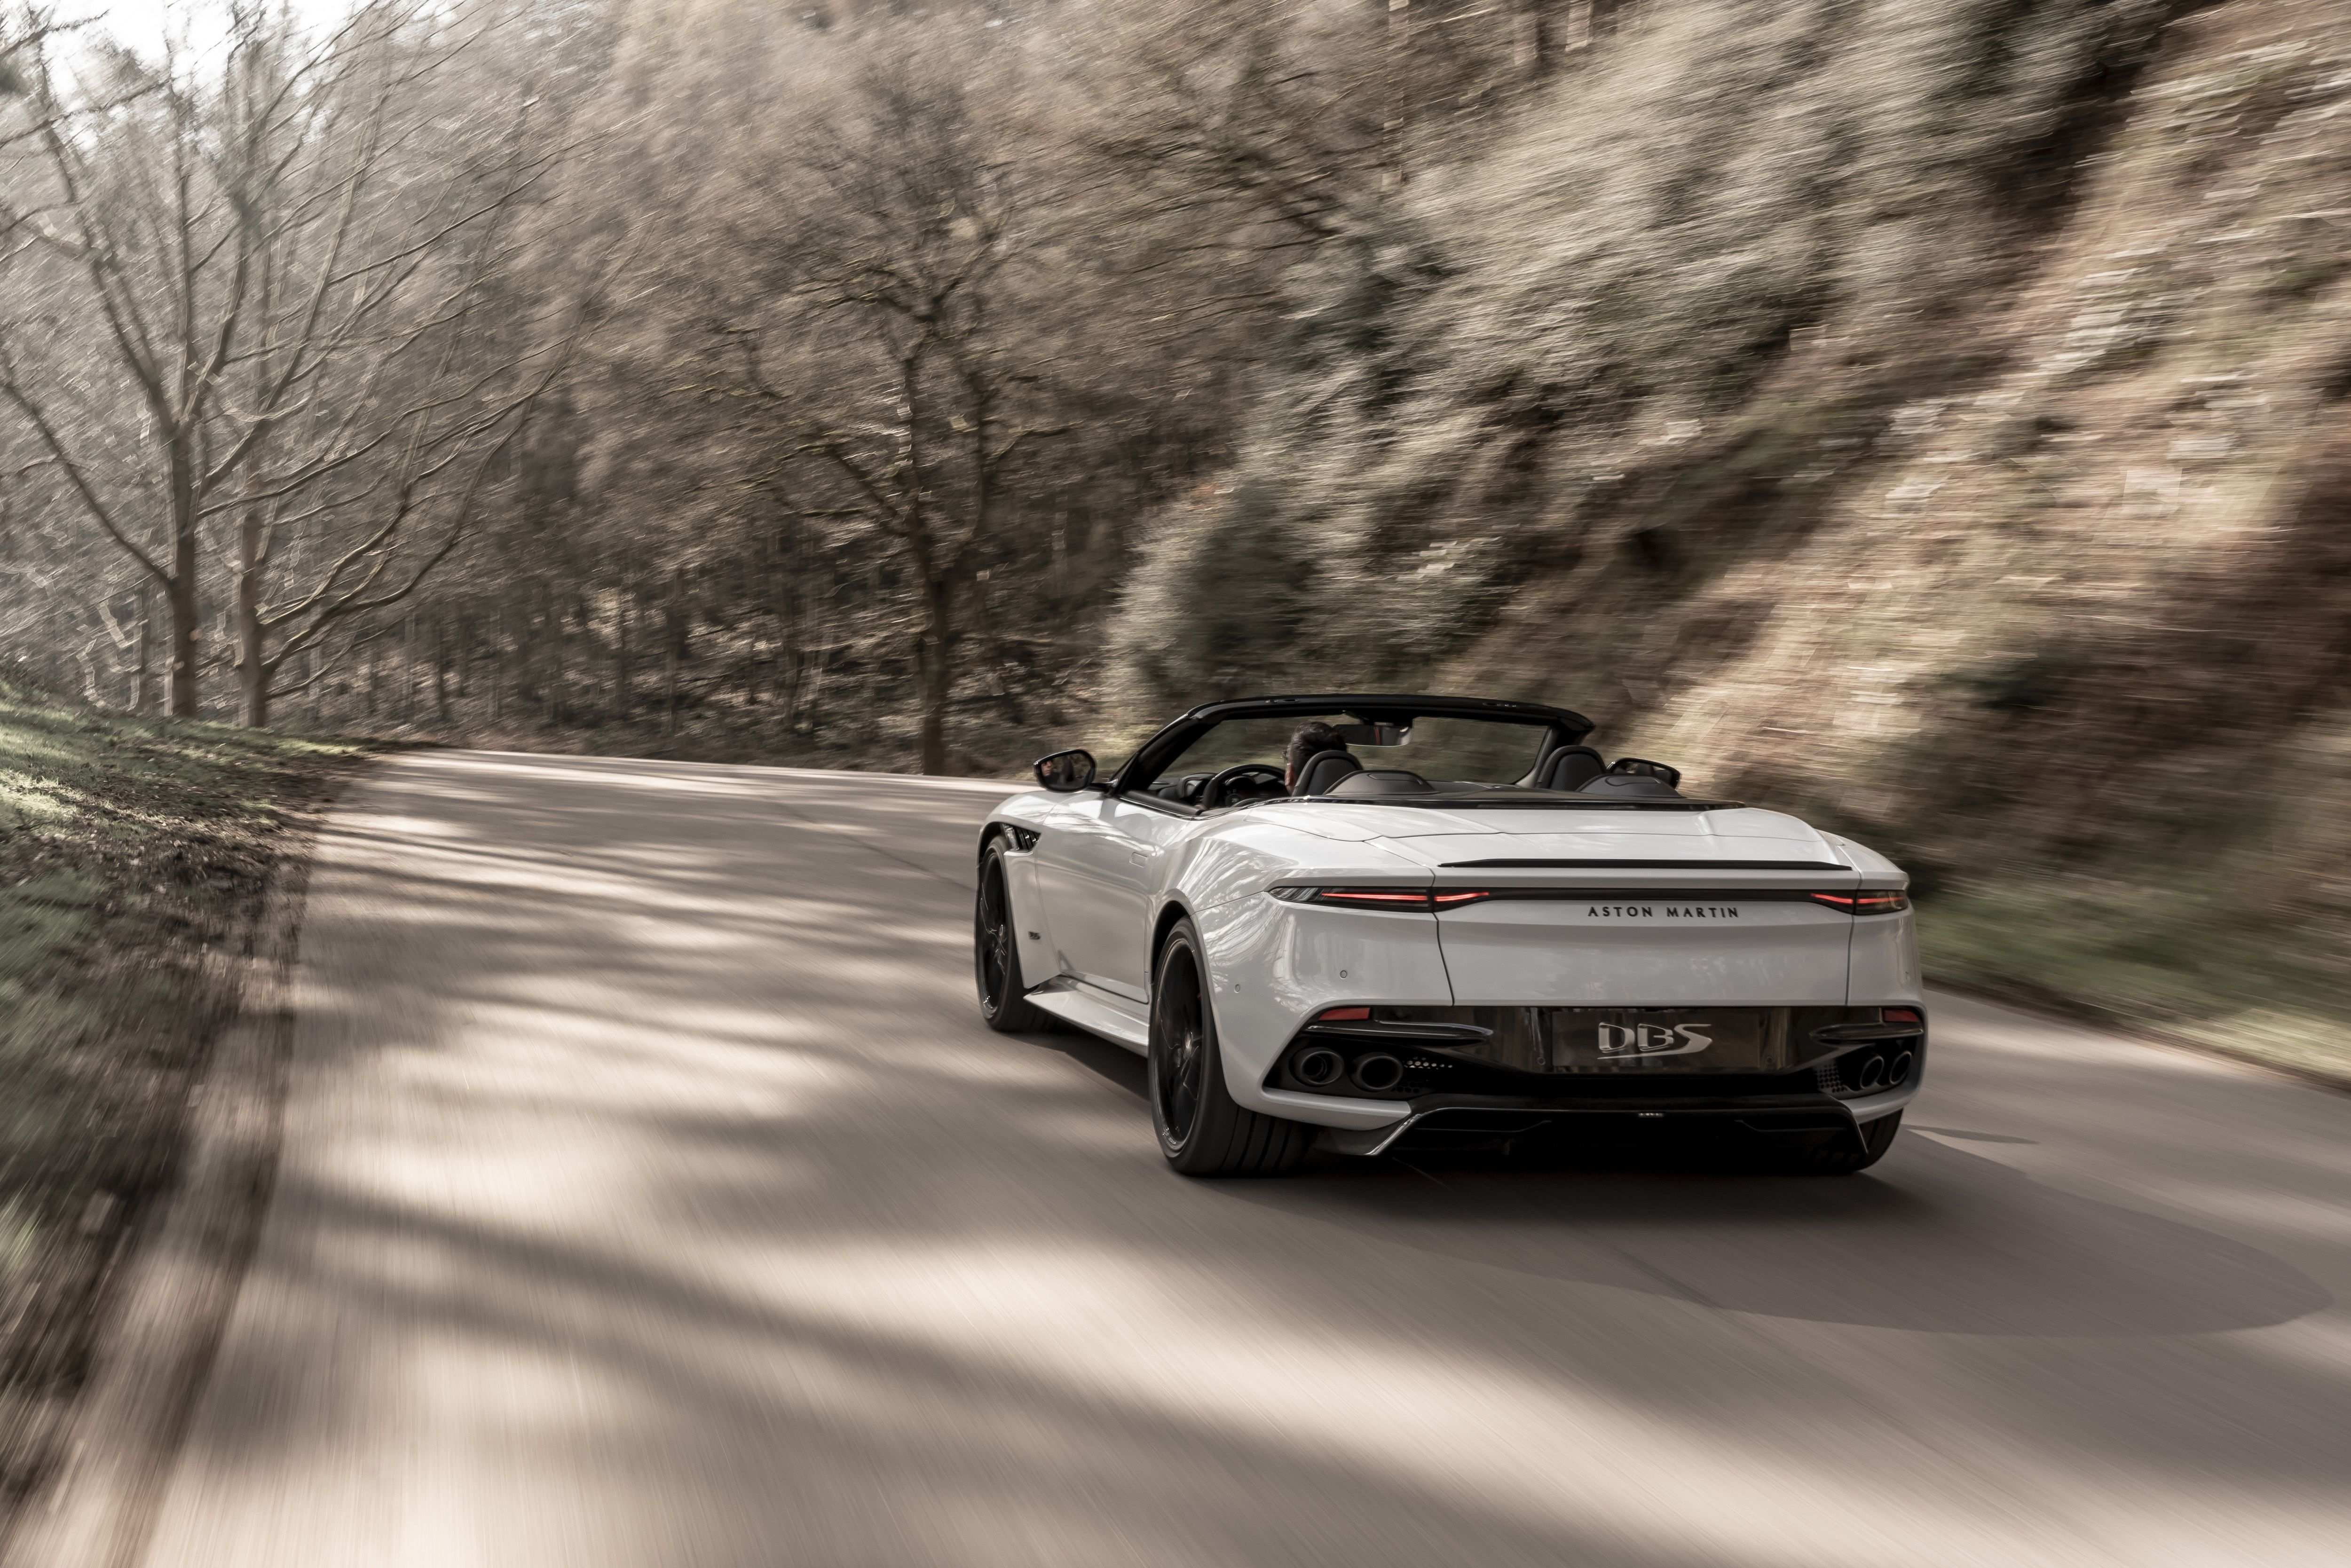 90 All New 2020 Aston Martin DB9 Pictures